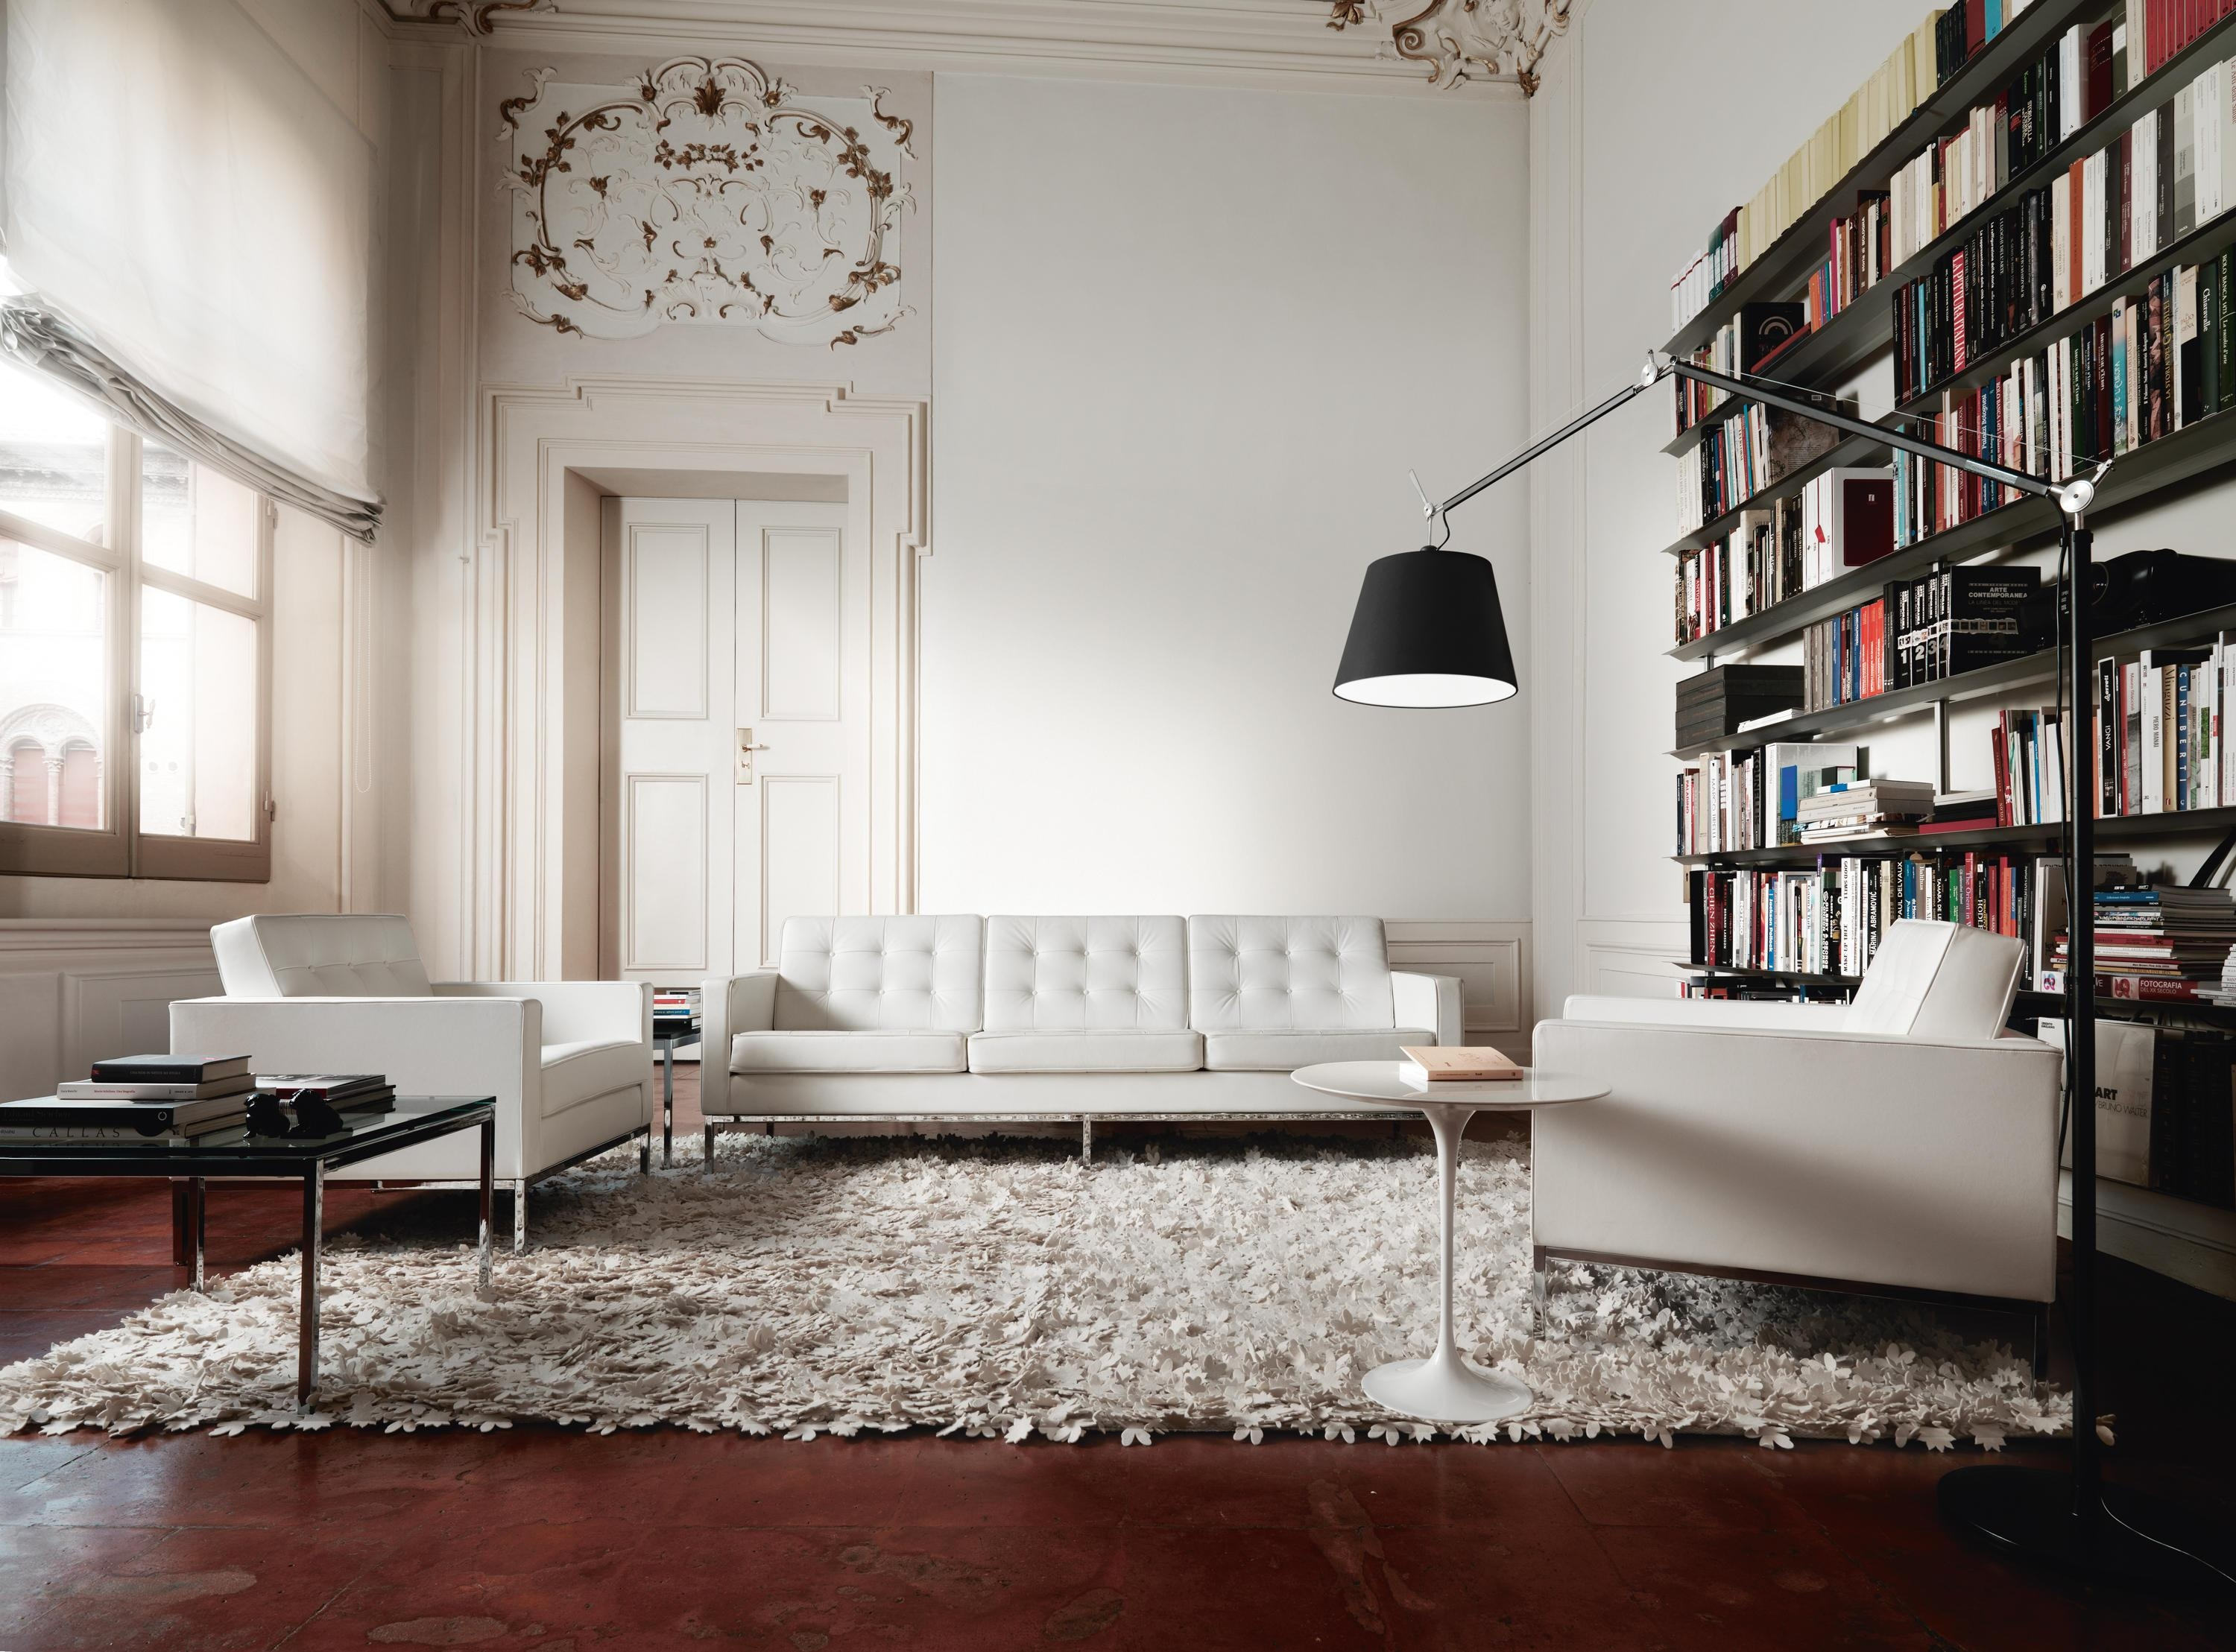 Florence Knoll Lounge 3 Seat Sofa – Lounge Sofas From Knoll Pertaining To Florence Knoll Wood Legs Sofas (View 9 of 20)